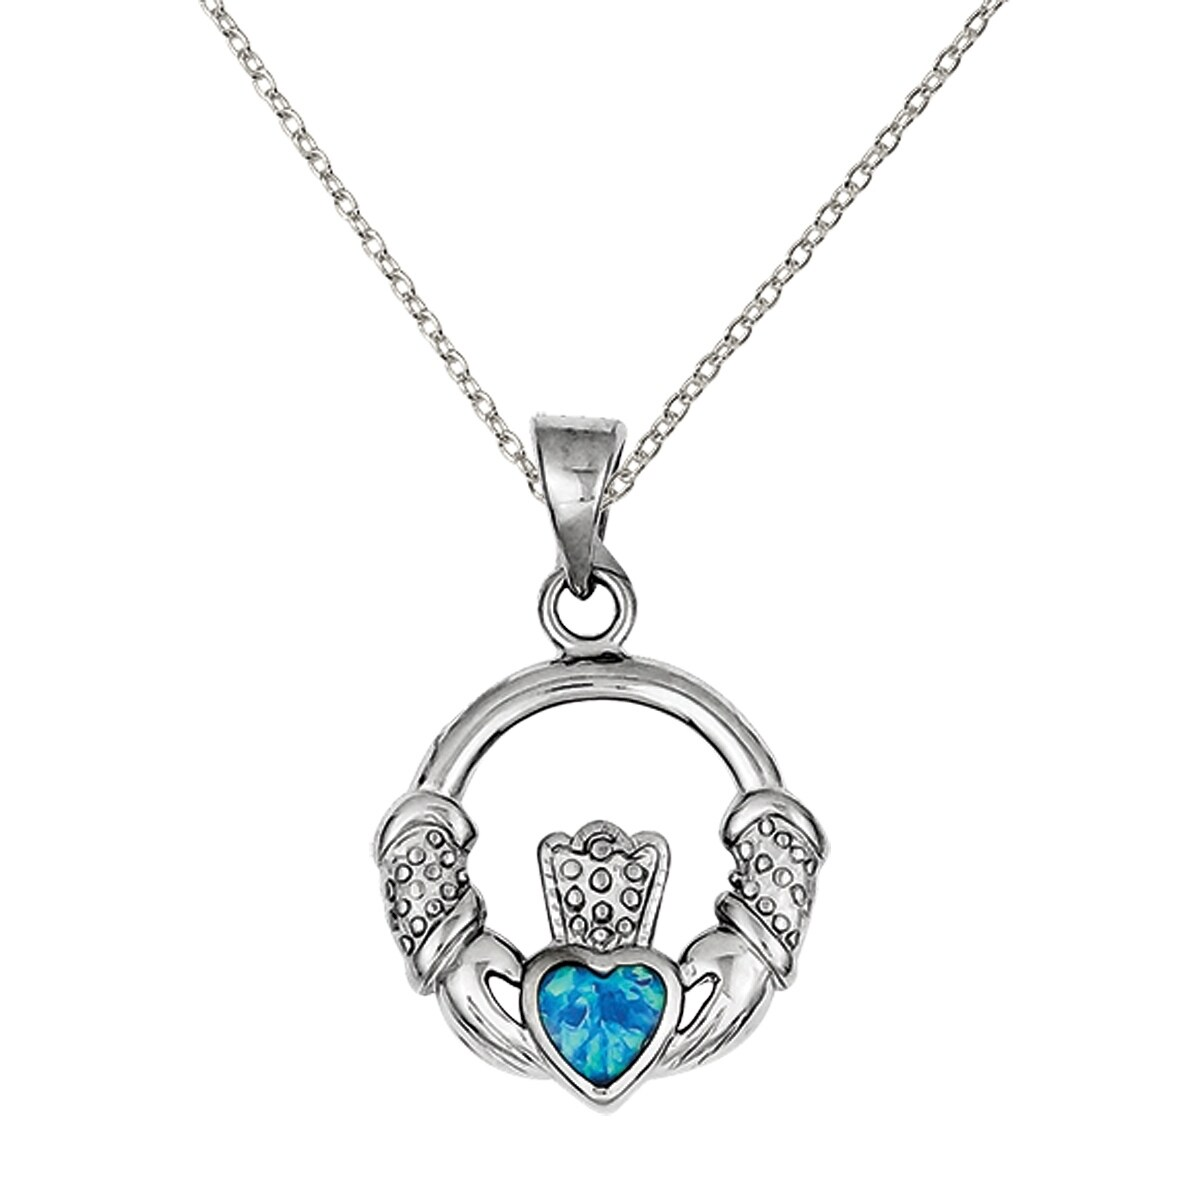 Versil sterling silver blue inlay created opal irish claddagh versil sterling silver blue inlay created opal irish claddagh pendant with 18 inch chain free shipping today overstock 26555328 aloadofball Image collections